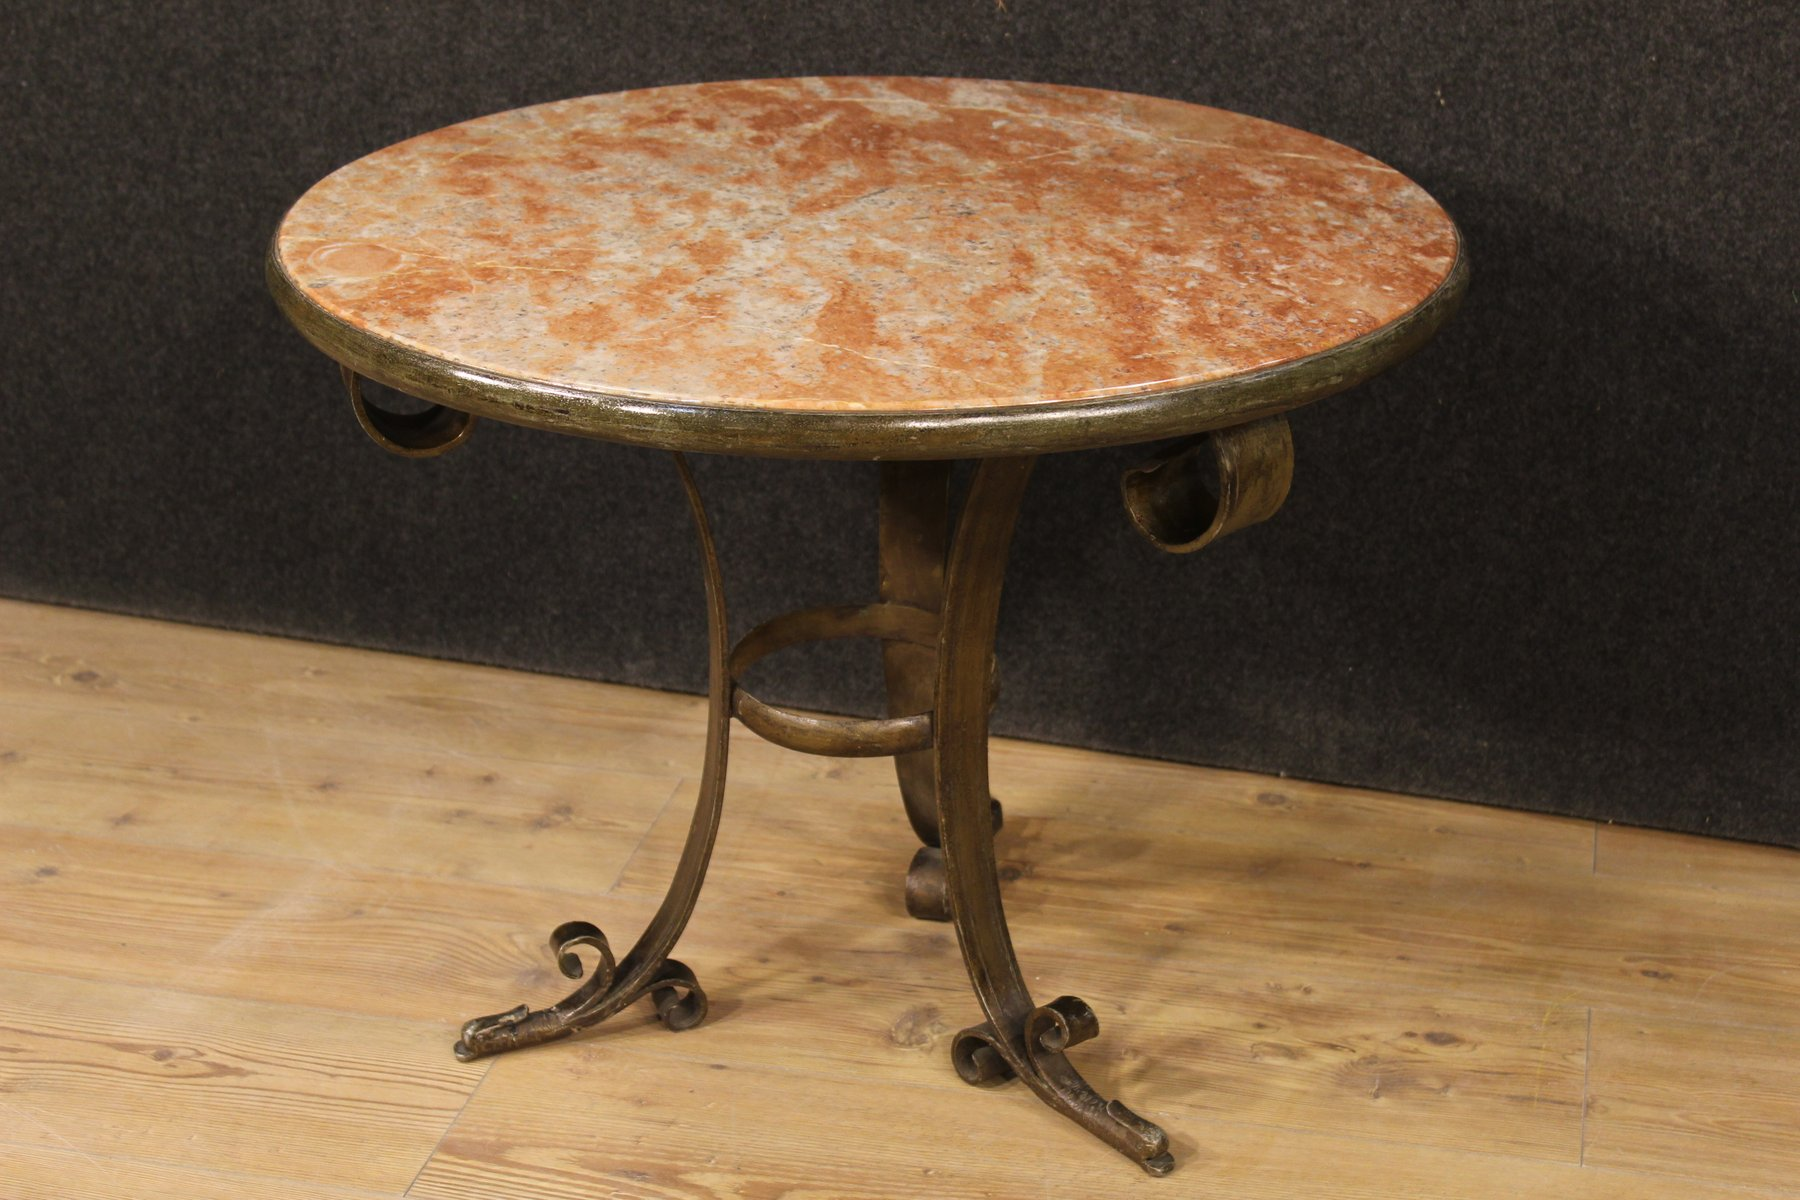 Italian Art Deco Marble Coffee Table for sale at Pamono